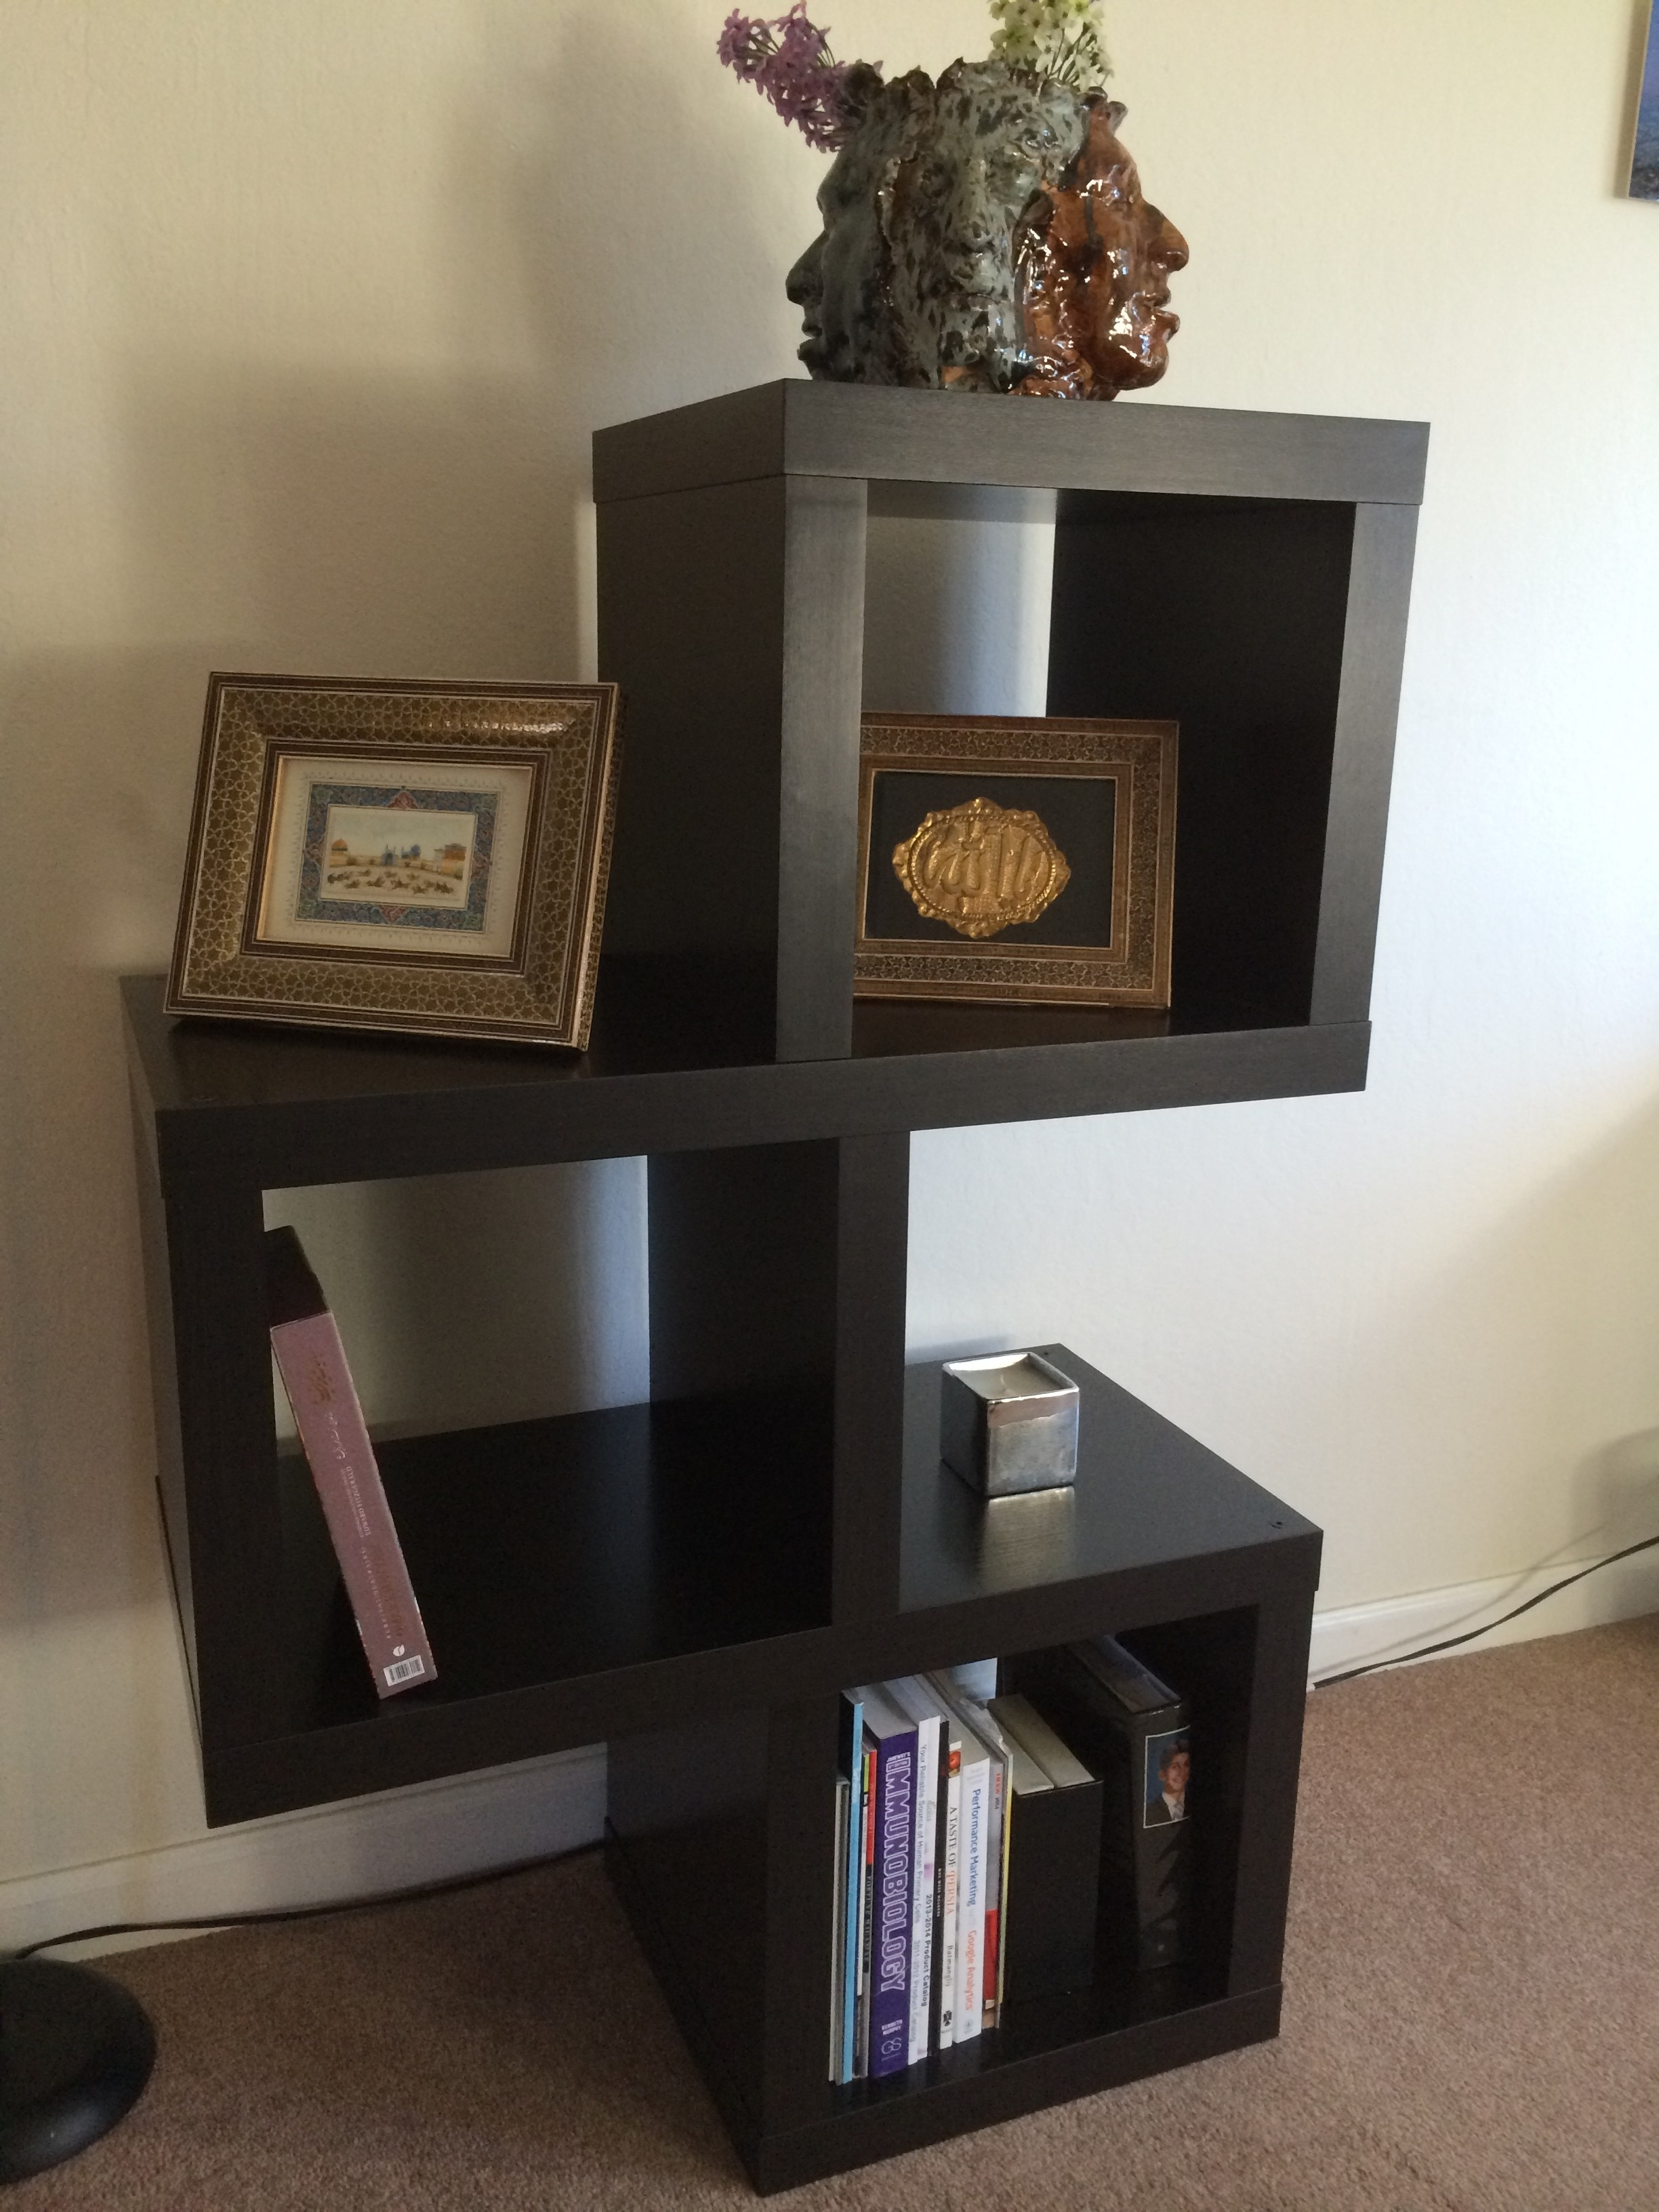 Stunning Shelving Unit With Modular Wall Shelving Also Painted Pertaining To Painted Shelving Units (#11 of 15)